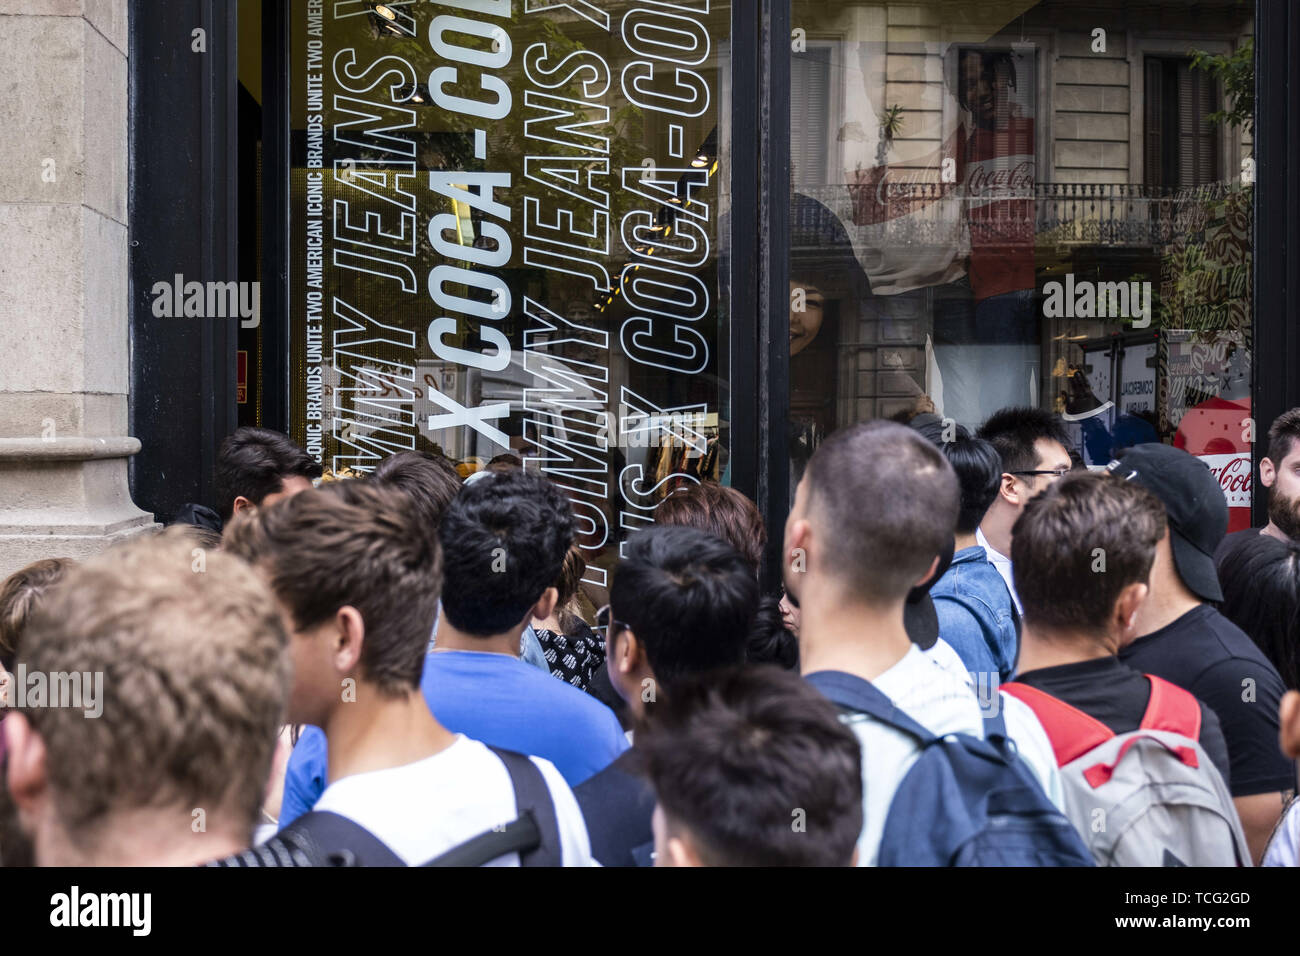 Barcelona, Catalonia, Spain. 7th June, 2019. A group of people wait infront of the shoe store for the opening hours so as to buy the new adidas shoe model.The German manufacturer of sports shoes Adidas has launched the limited edition of the Yeezy Boost 350 sports shoe model designed by rapper Kanye West. The limited production of this model has made many young people crowd in front of stores and resellers to be one of the lucky ones. Credit: Paco Freire/SOPA Images/ZUMA Wire/Alamy Live News - Stock Image